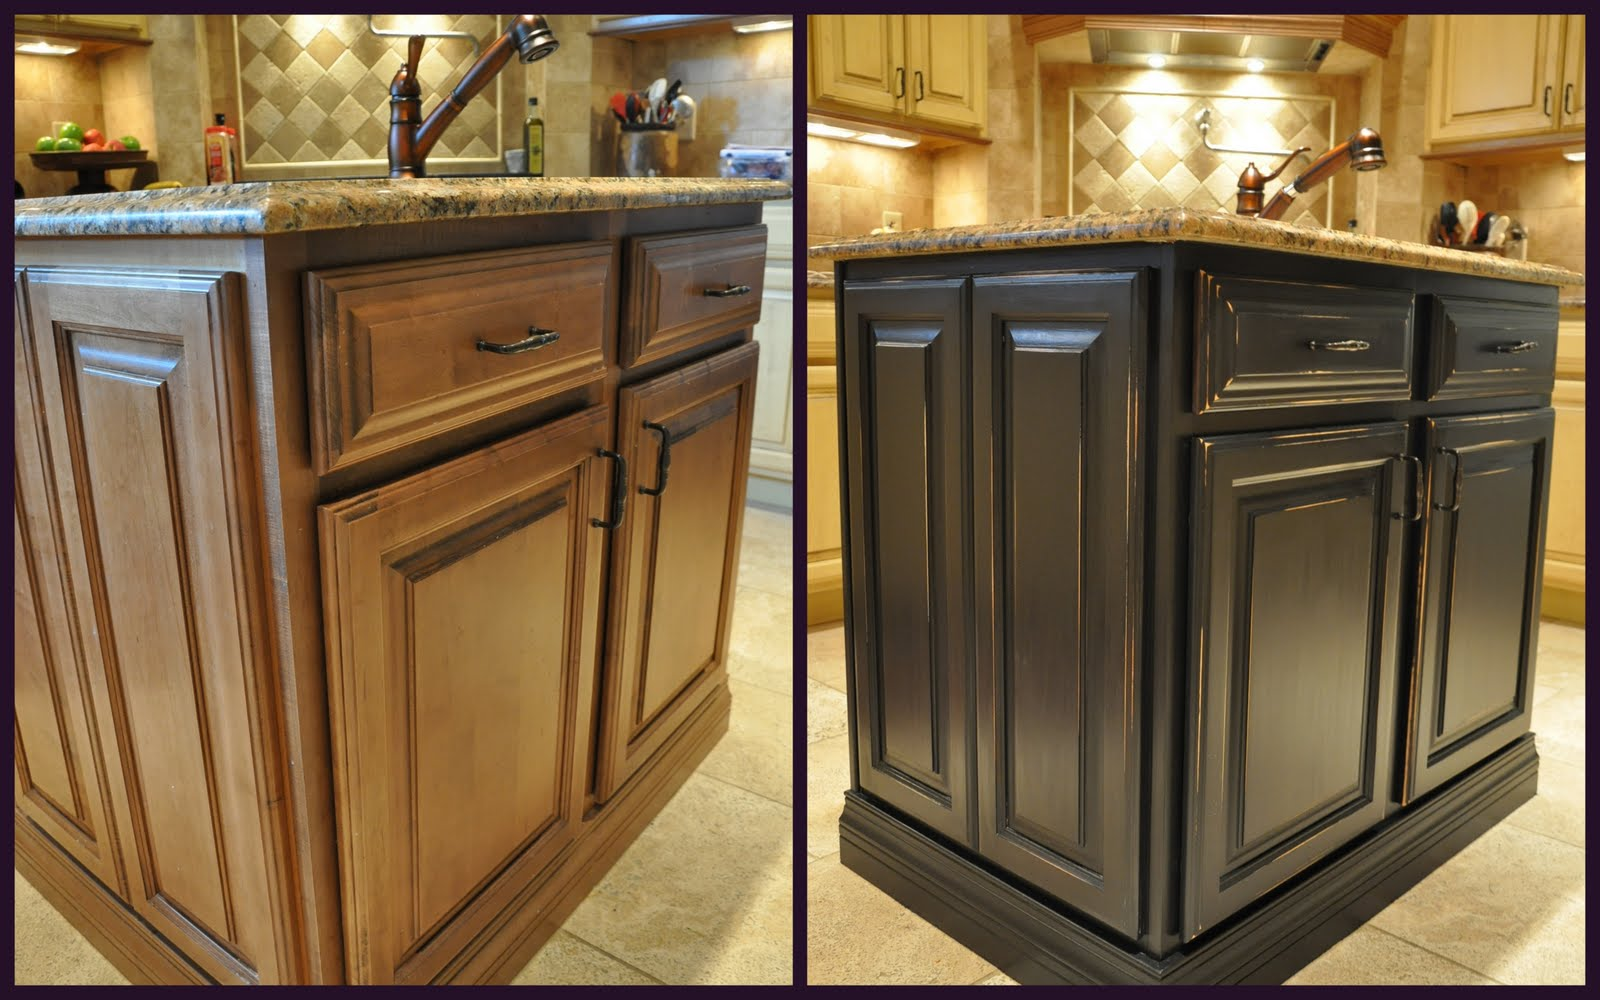 painted kitchen island revea kitchen island cabinets Painted Kitchen Island Reveal